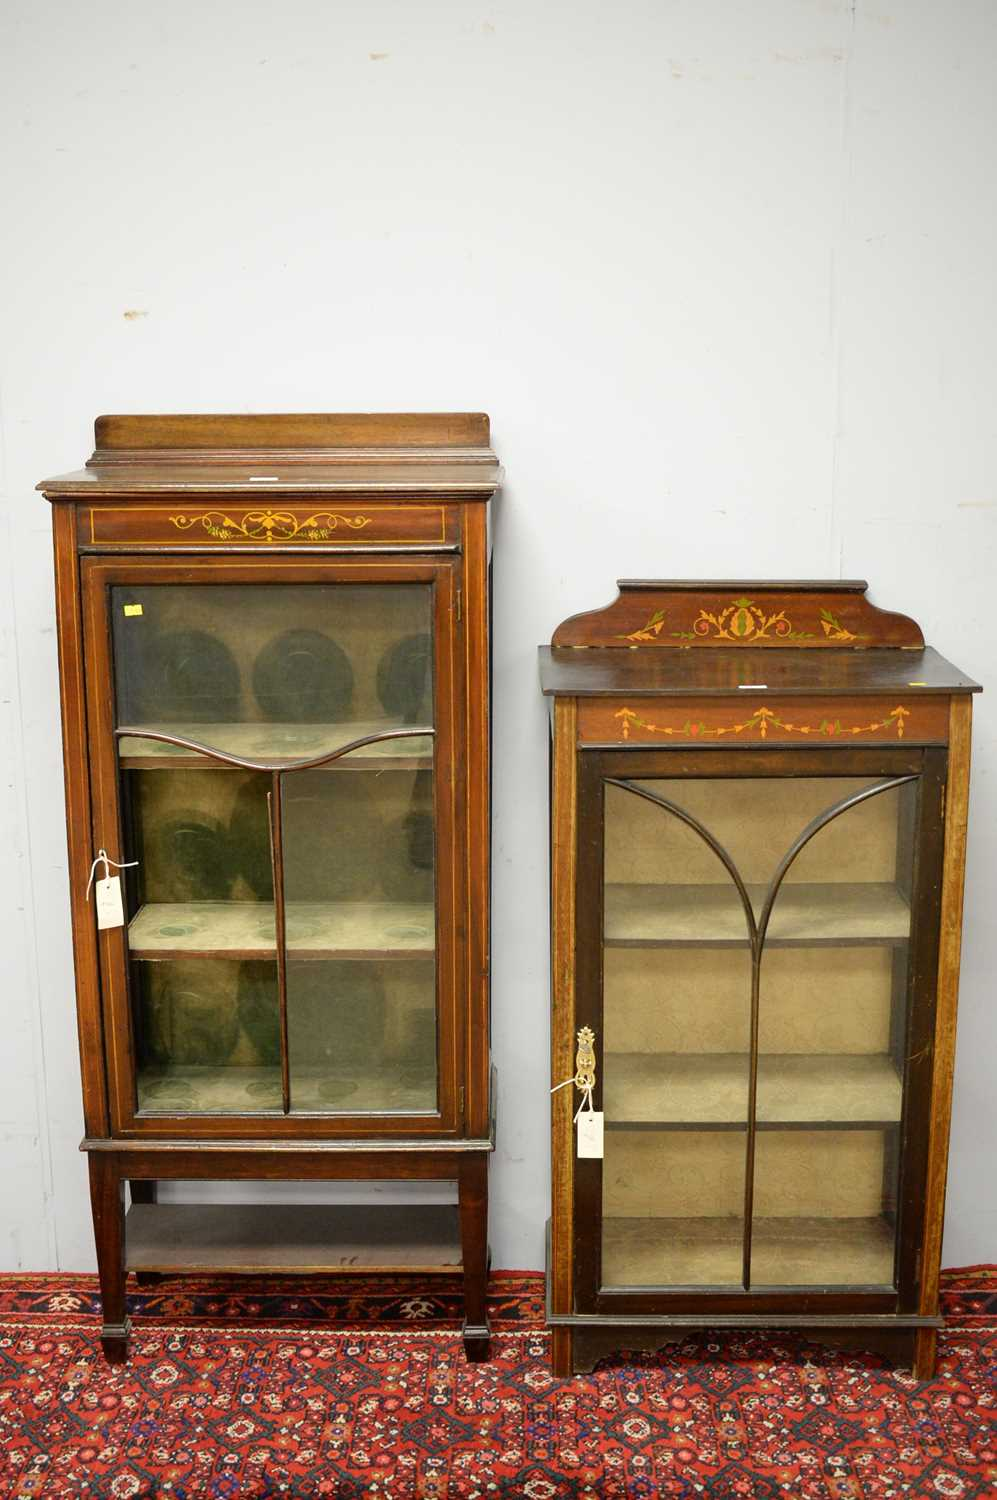 Two early 20th C display cabinets. - Image 2 of 6